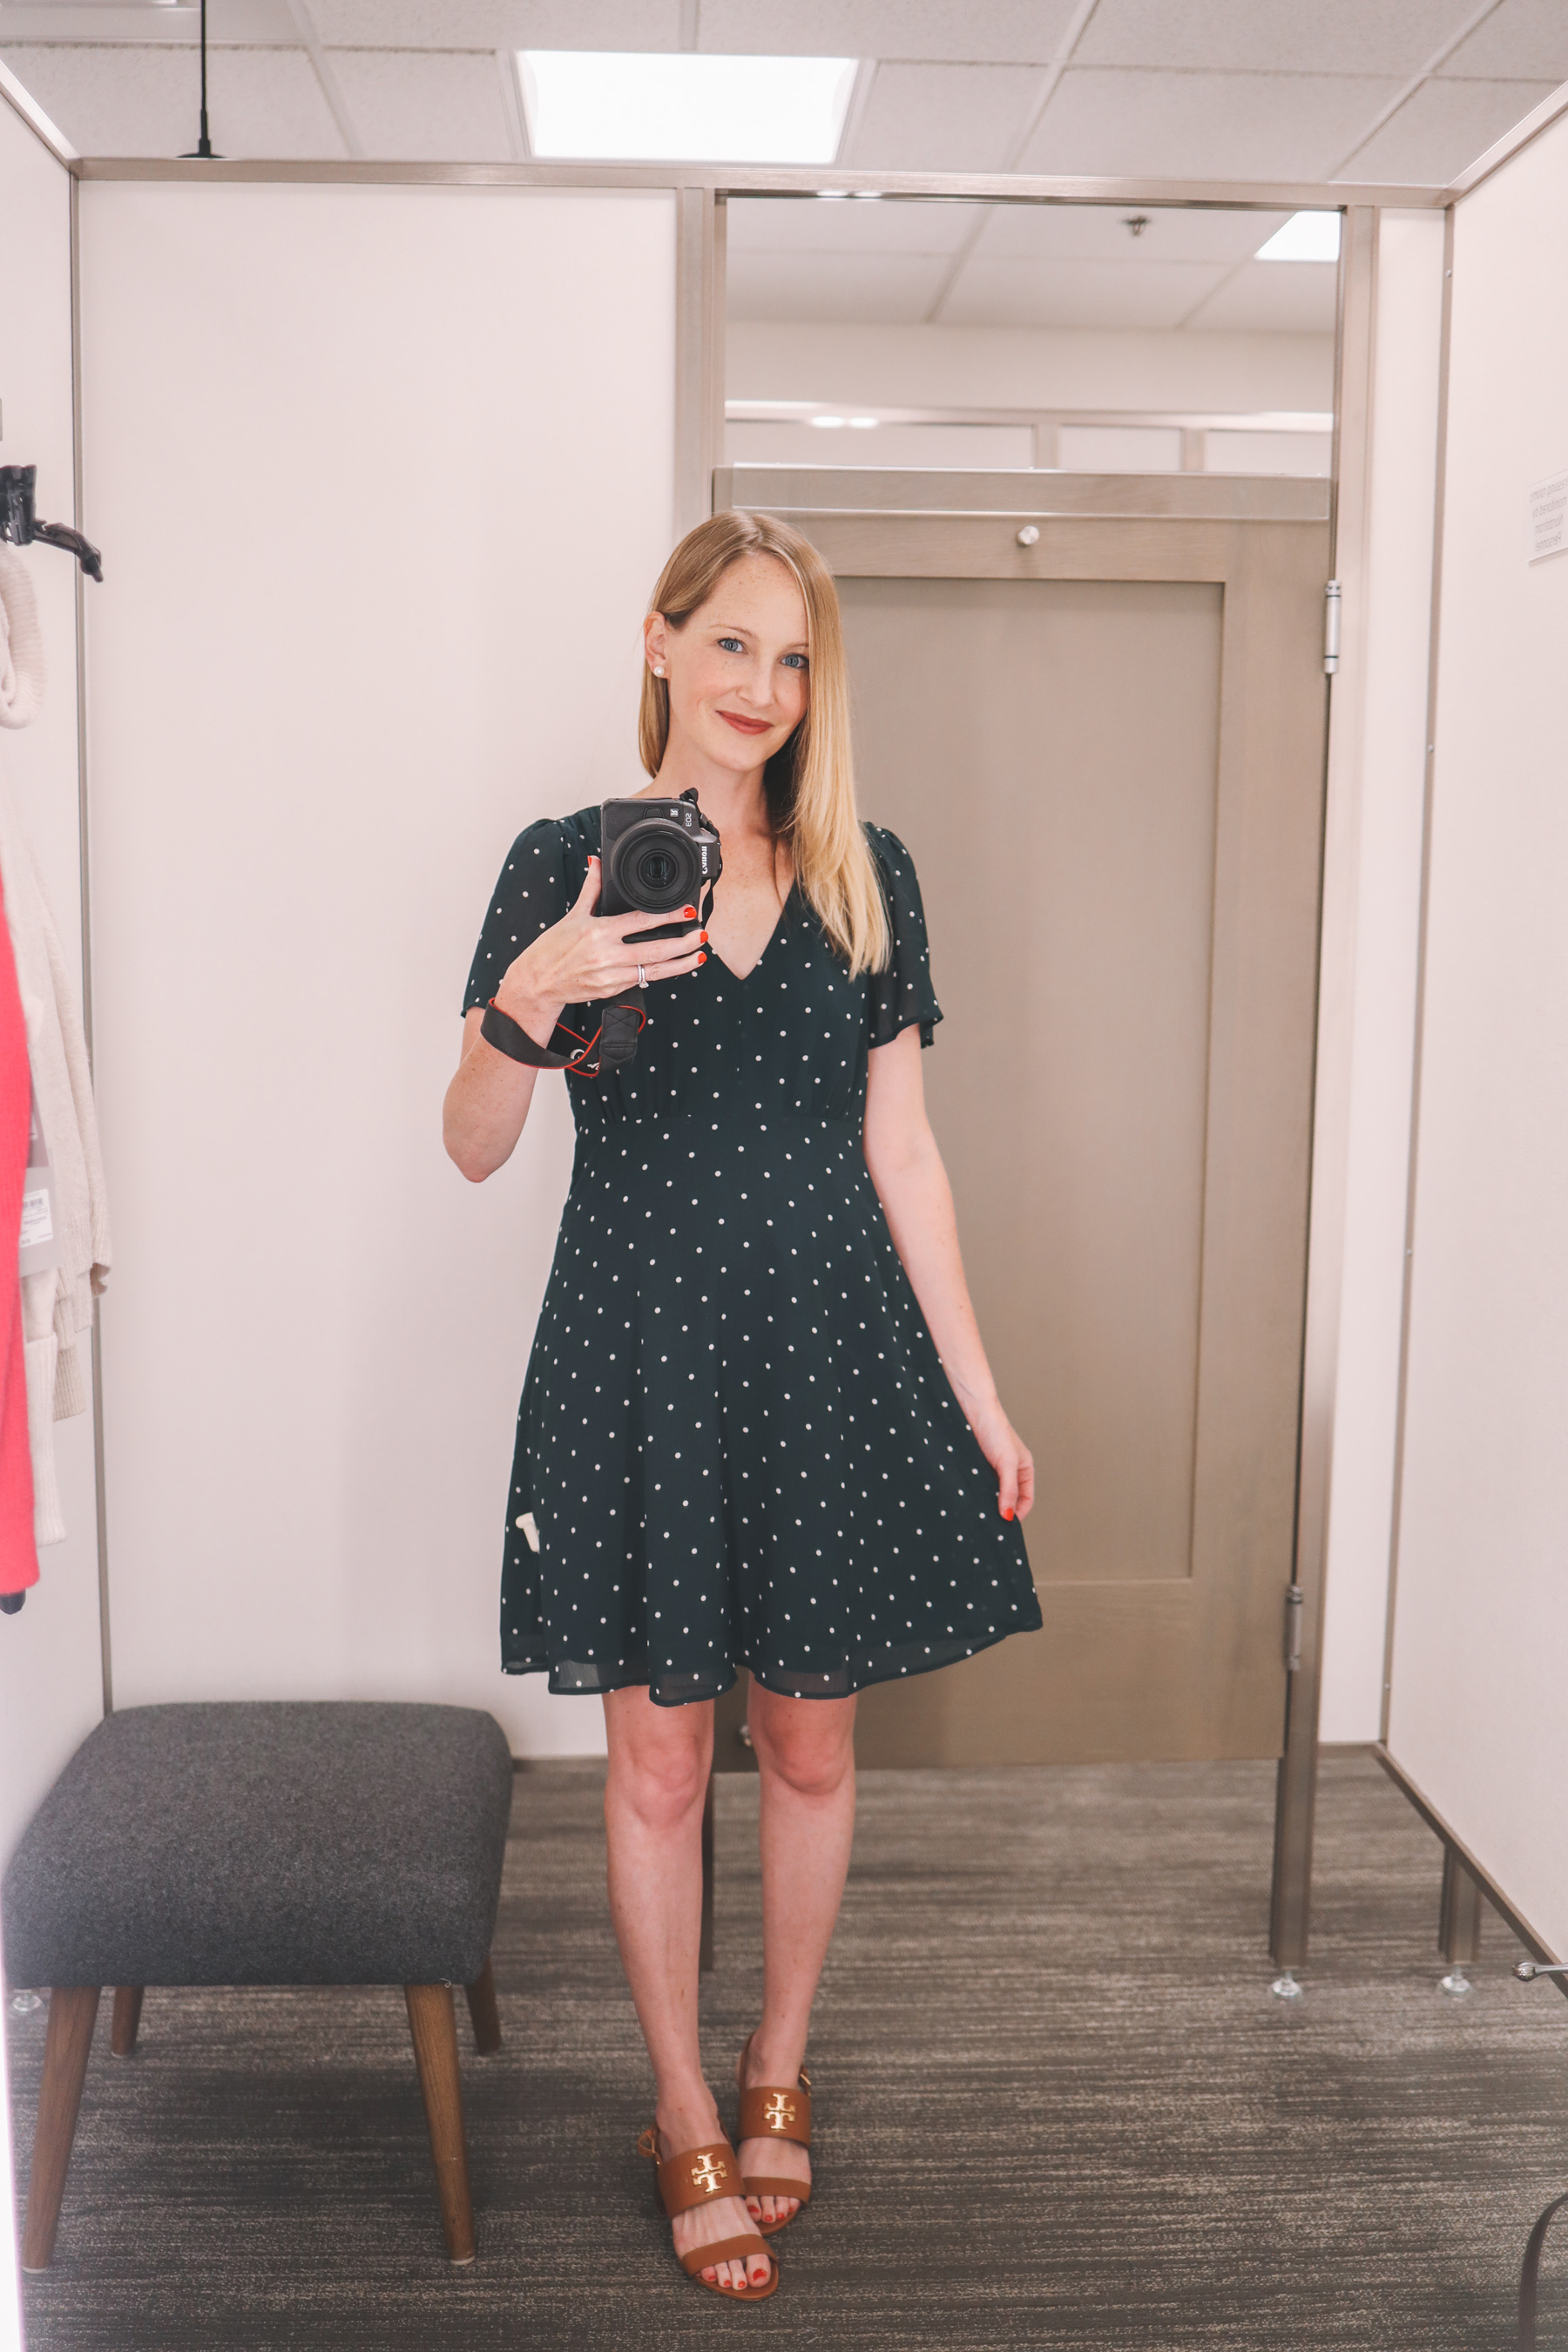 The Super-Flattering Polka Dot Dress